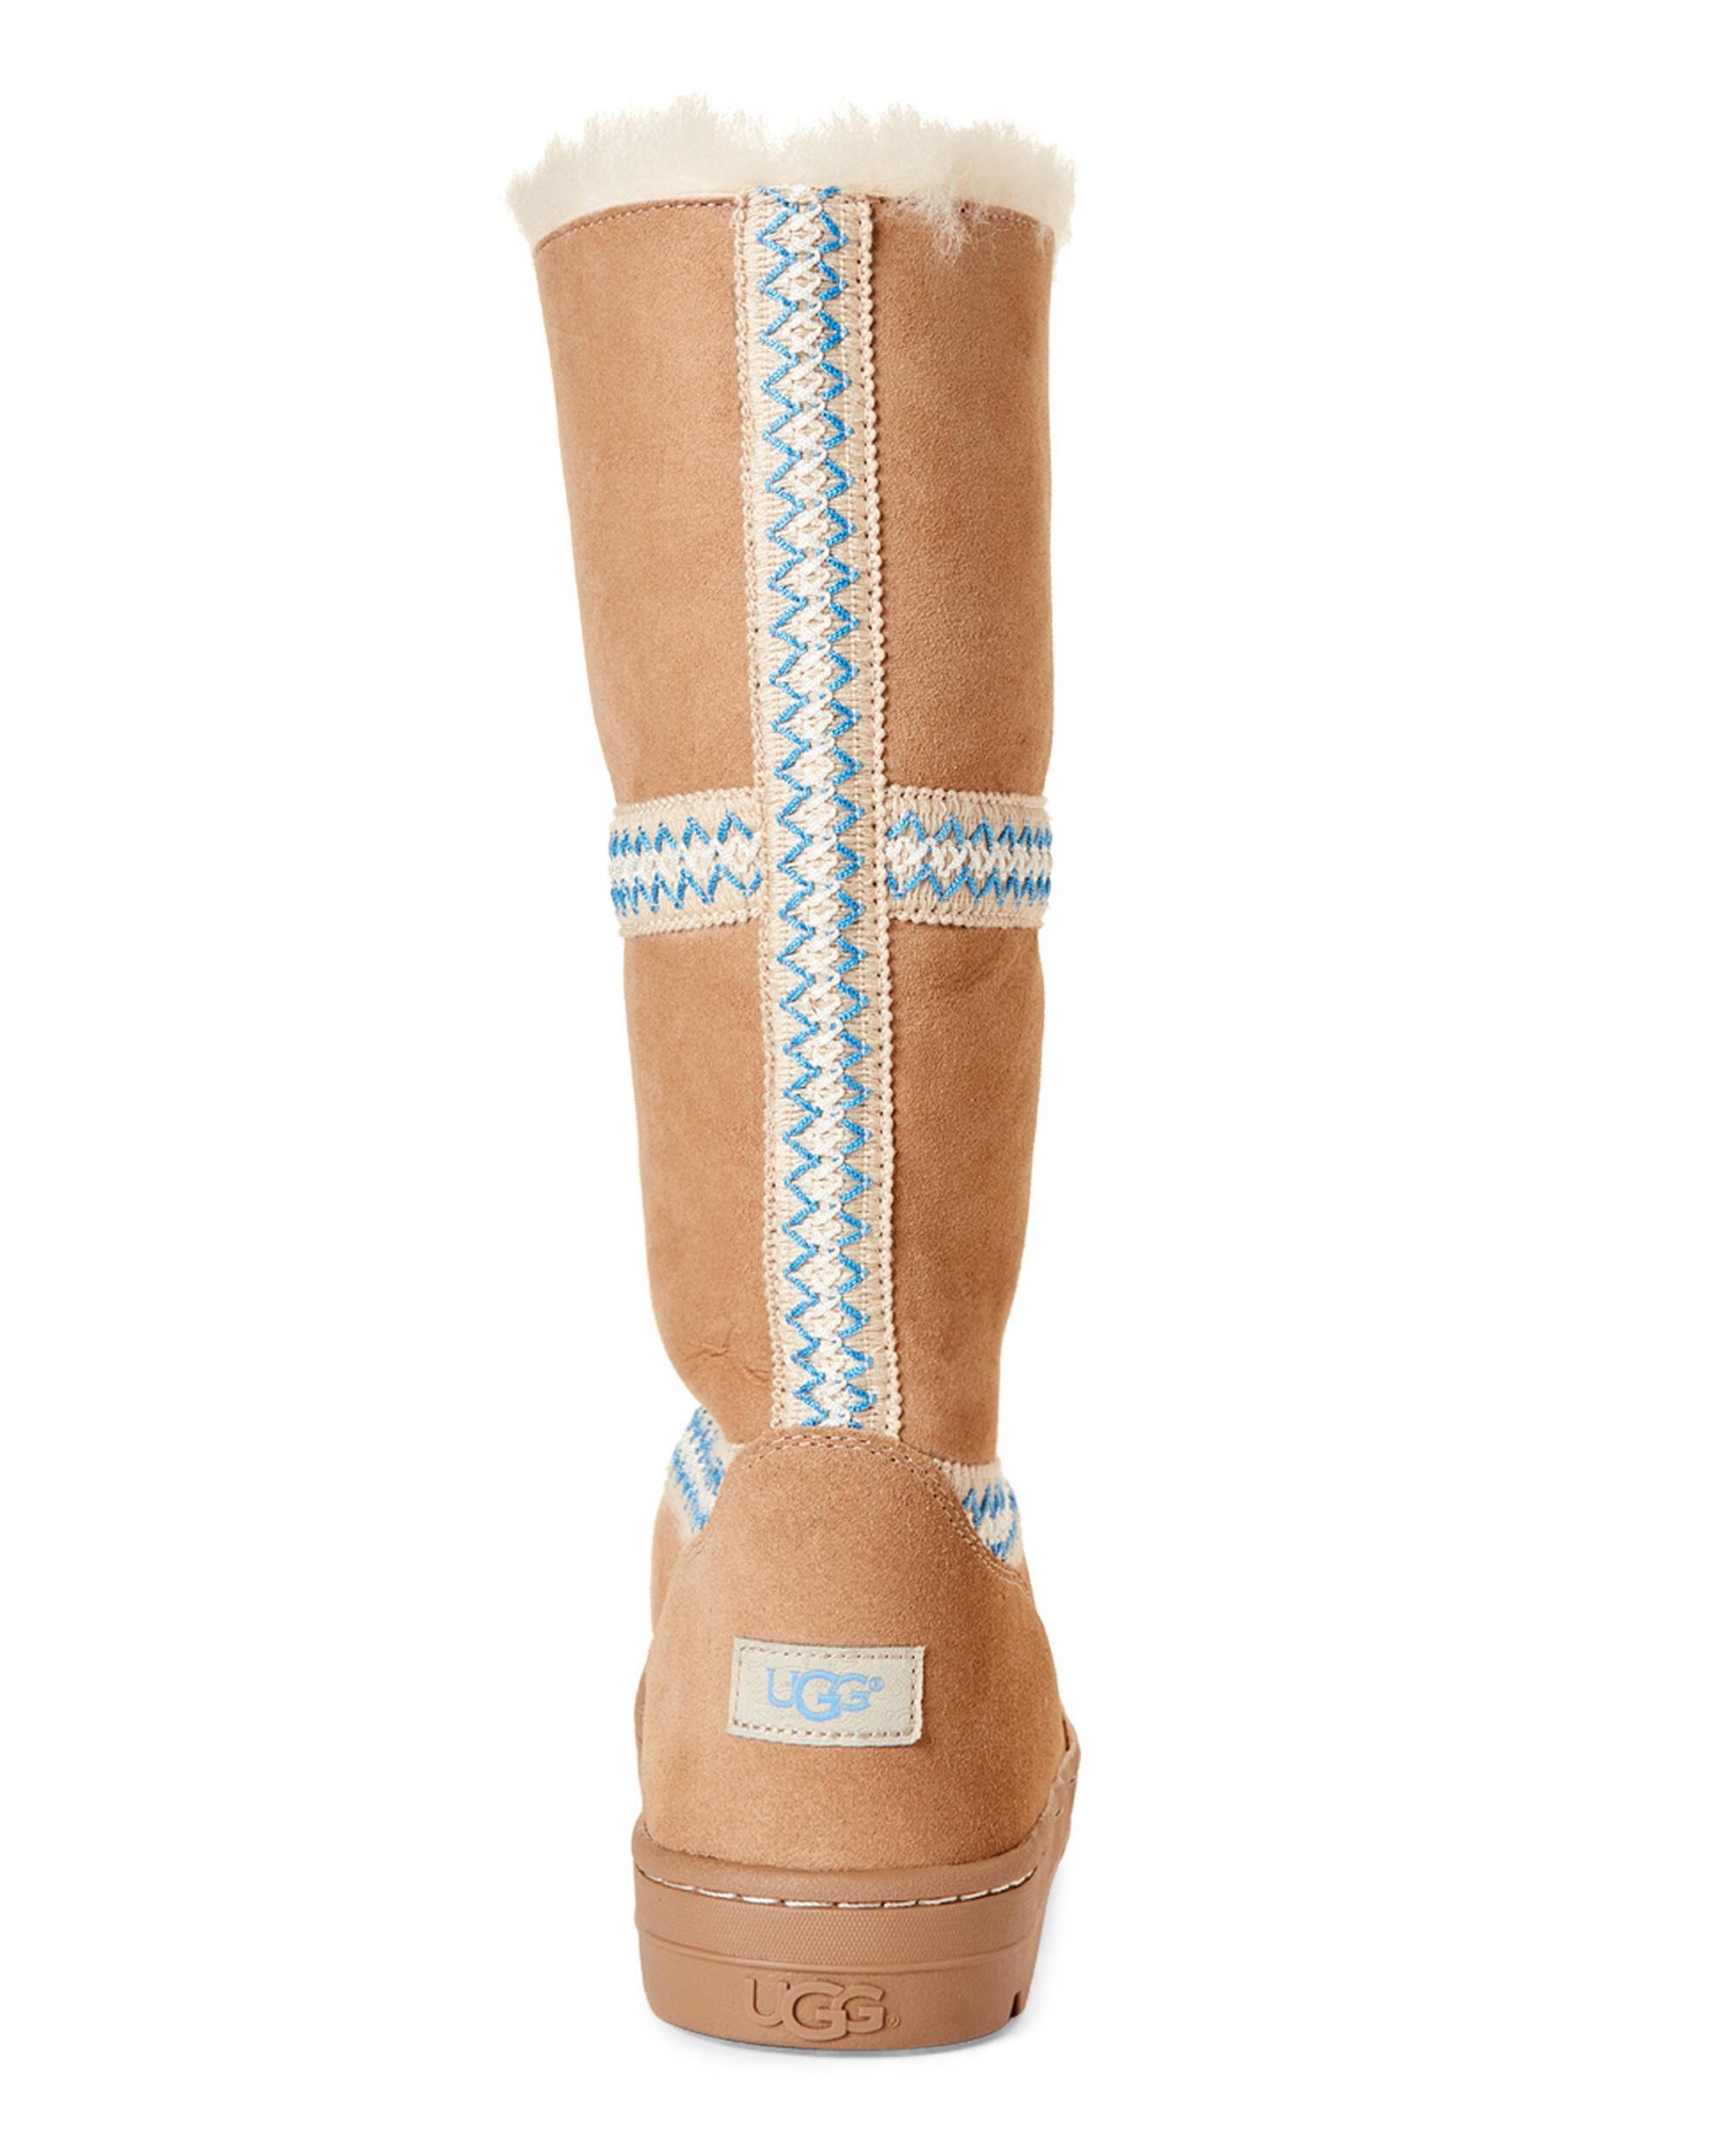 e81f5d3356a UGG Sand Sundance Revival Real Fur Boots in Natural - Lyst